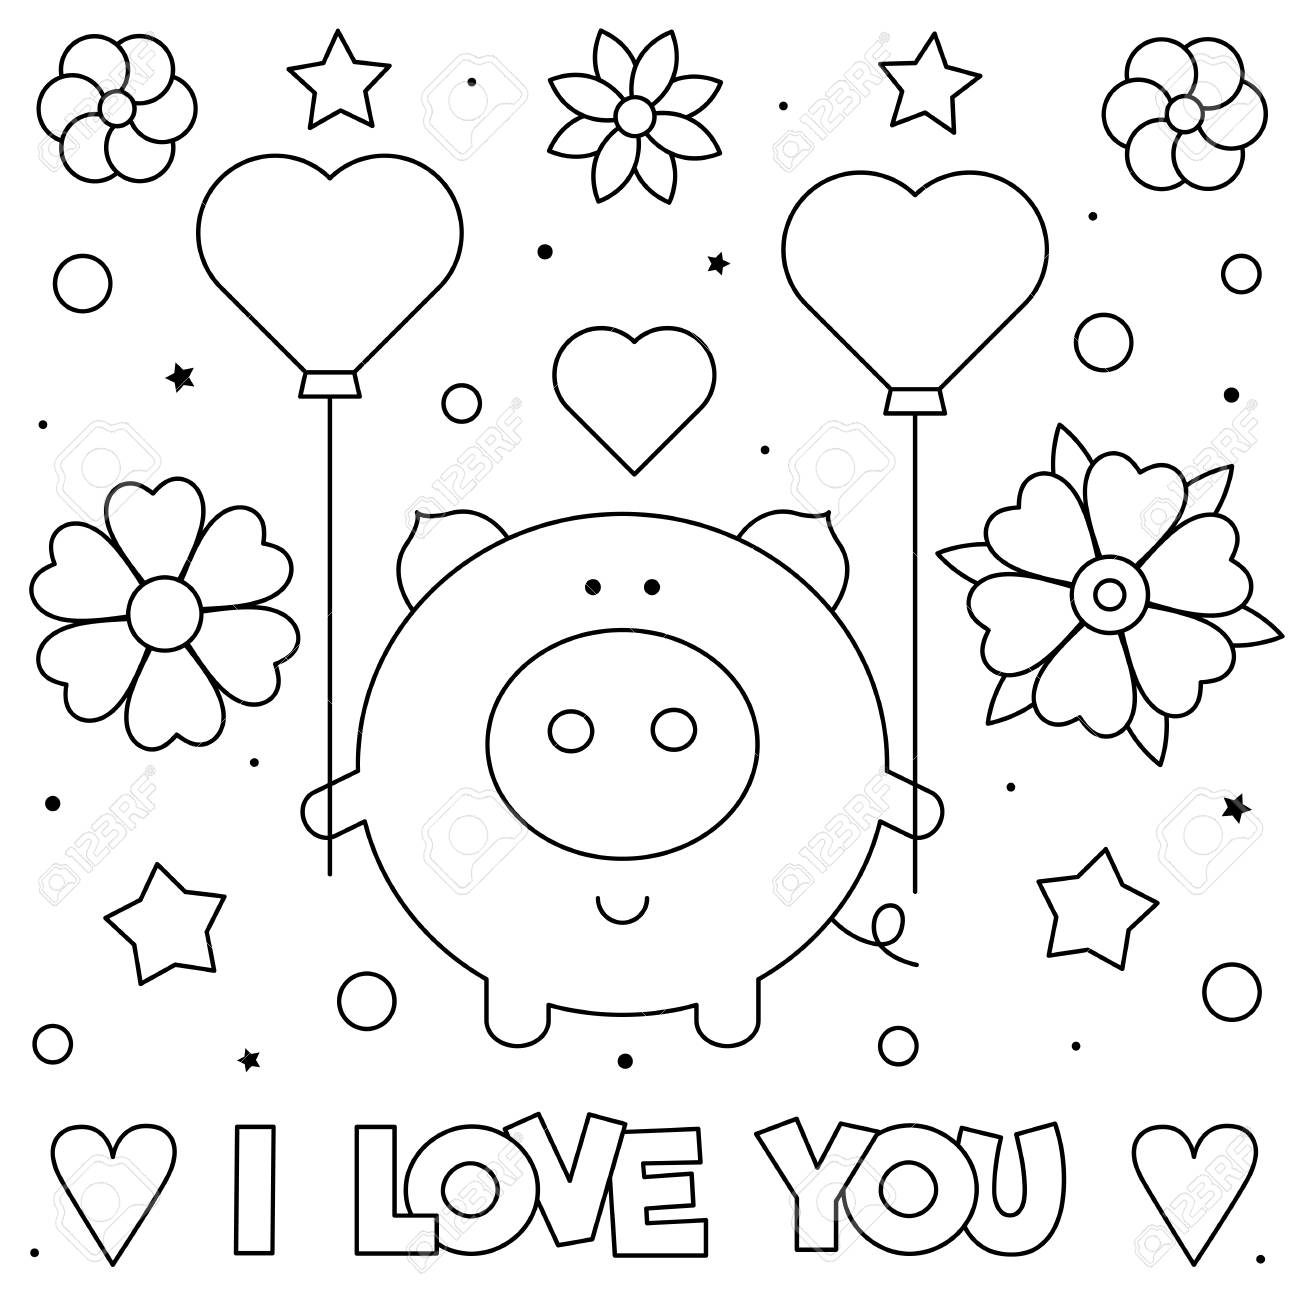 I Love You. Coloring page. Black and white vector illustration..